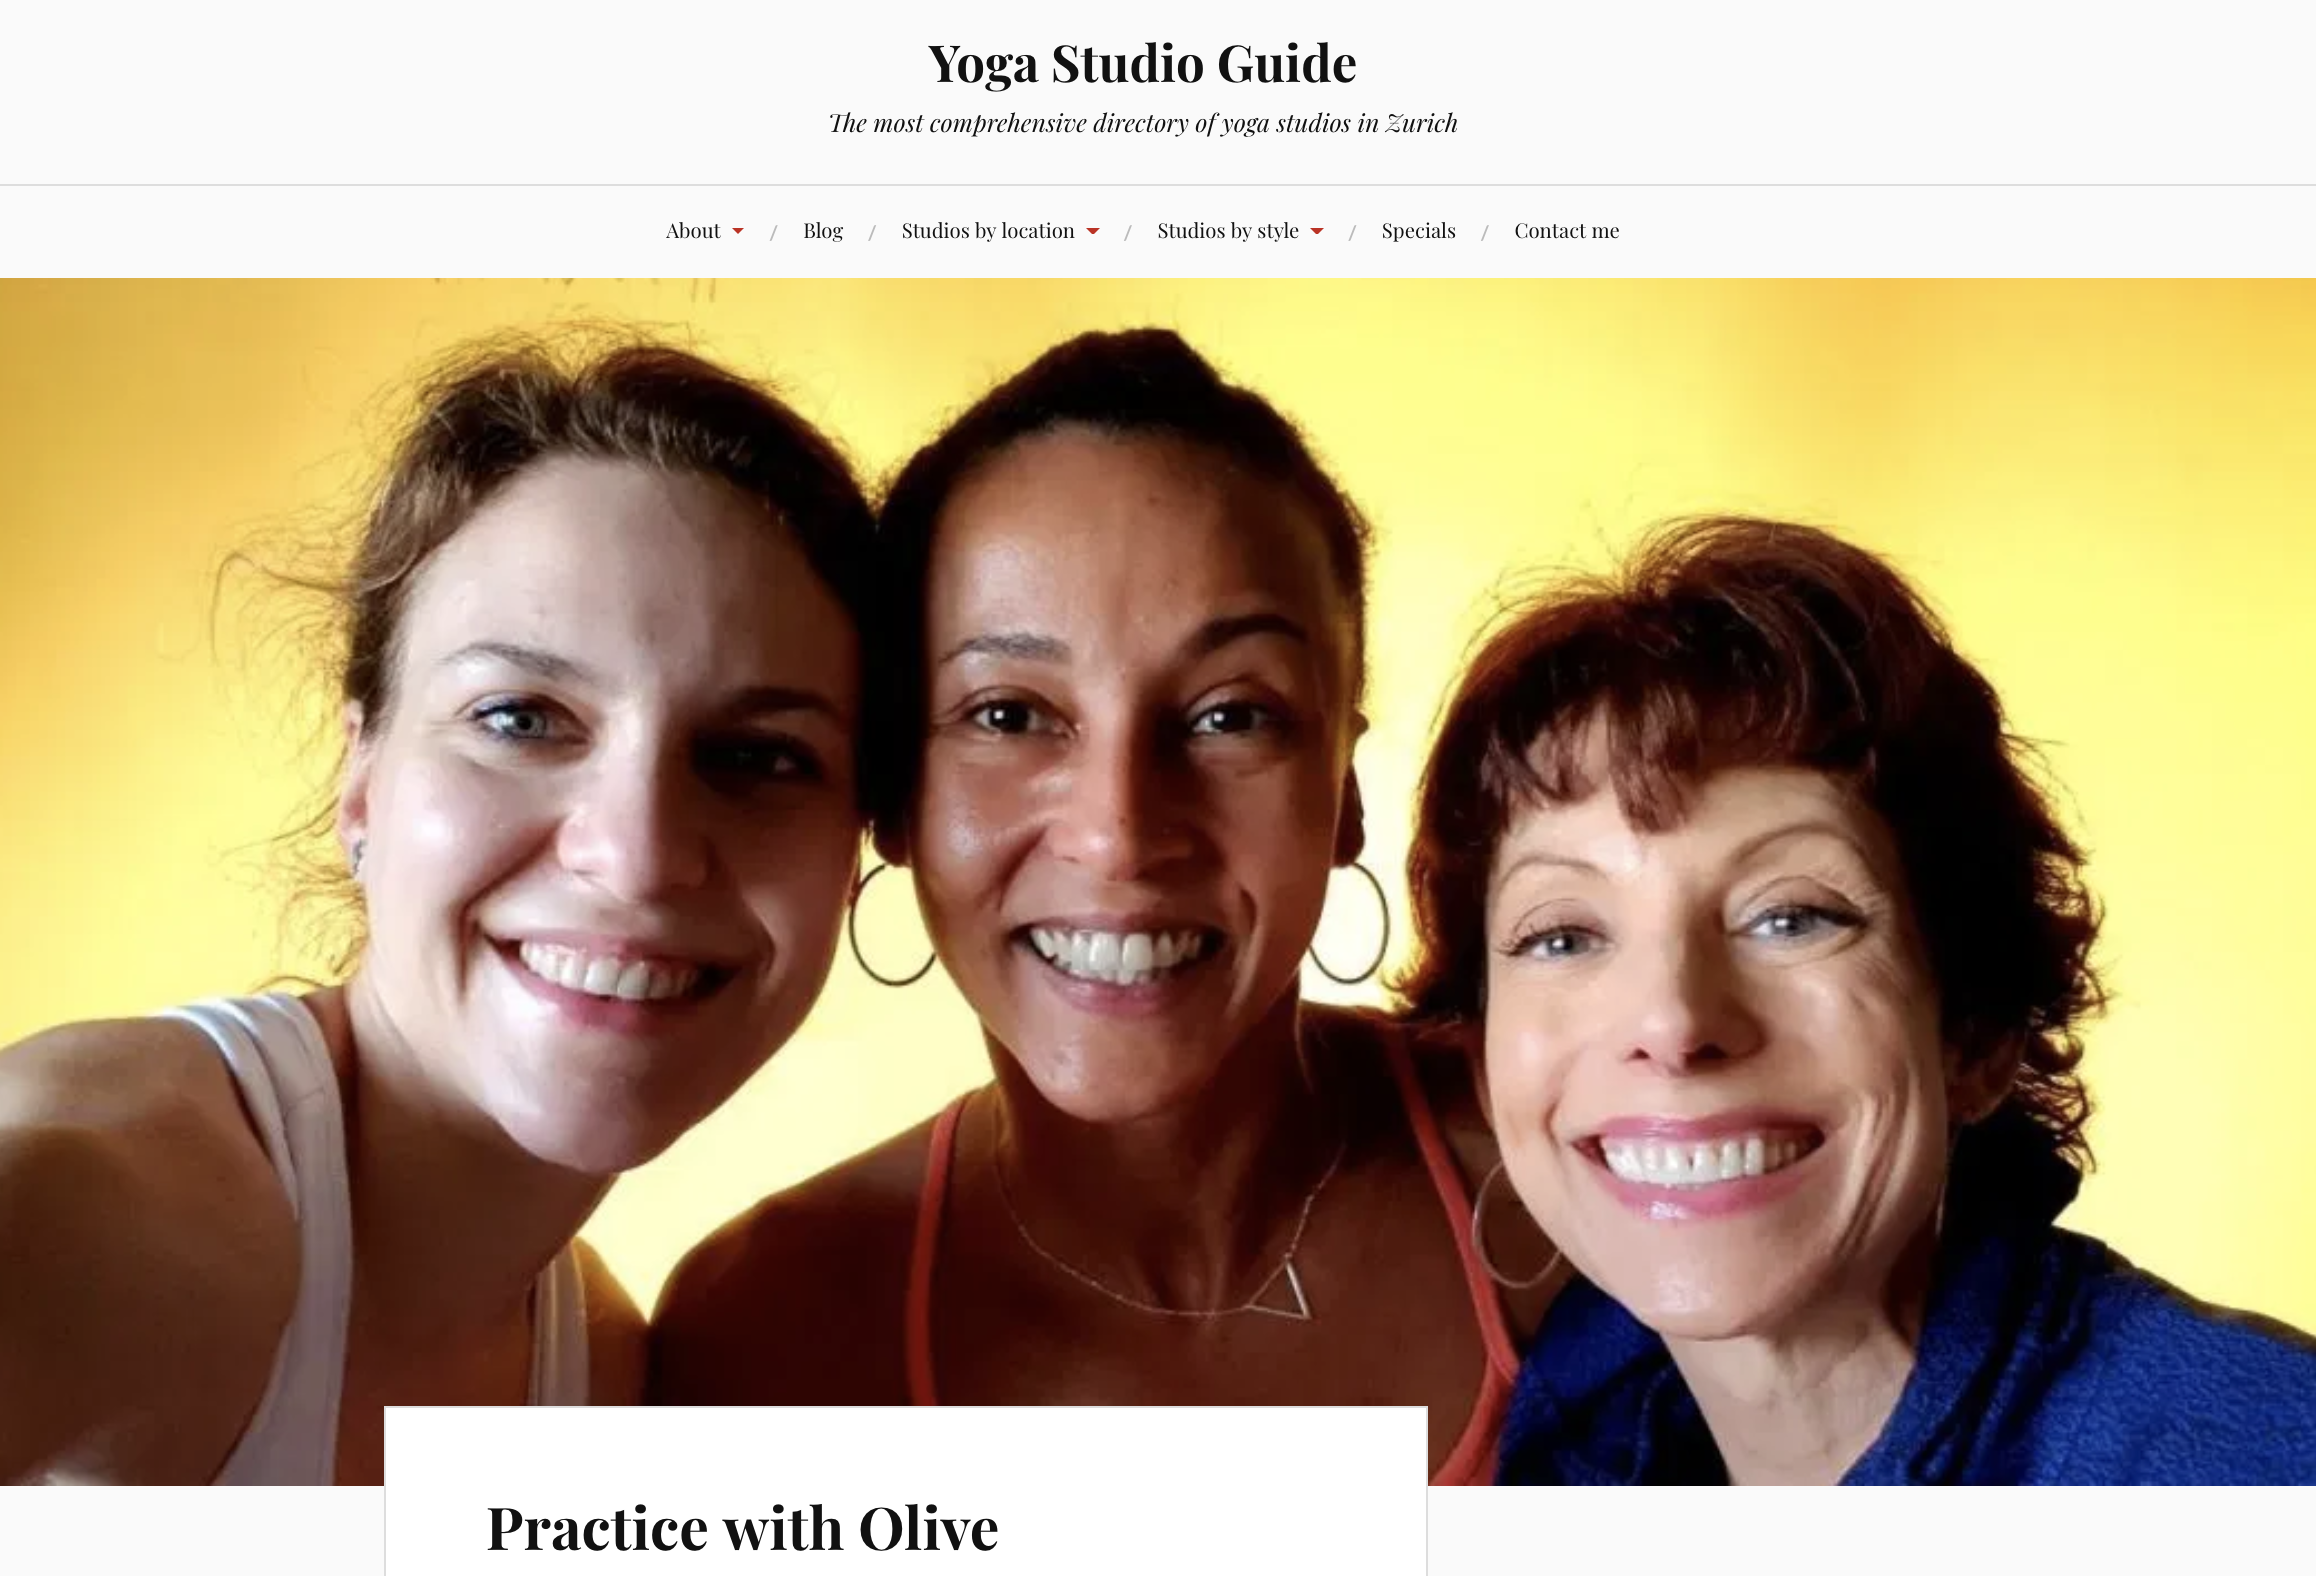 Review on Yoga Studio Guide